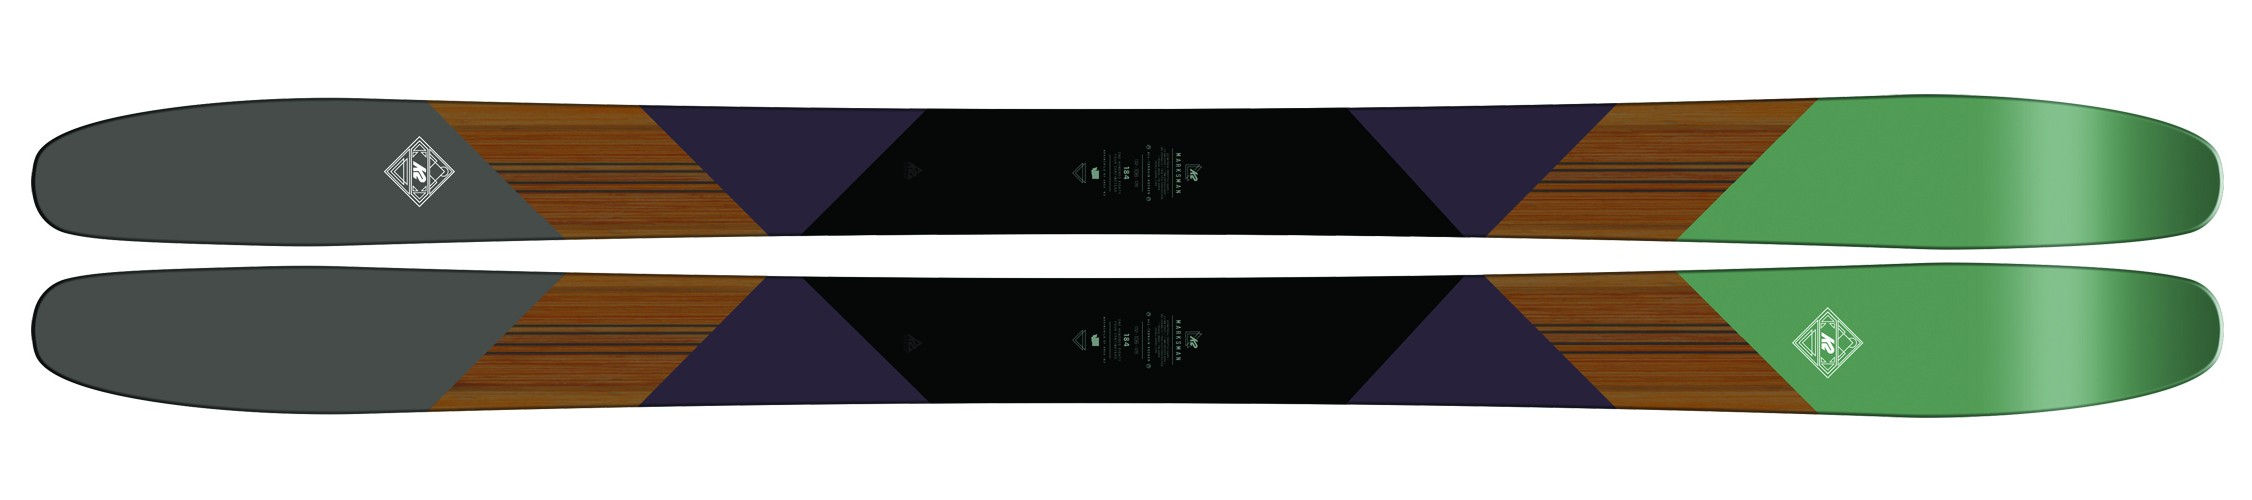 k2skis_1617_marksman_top_c-copy